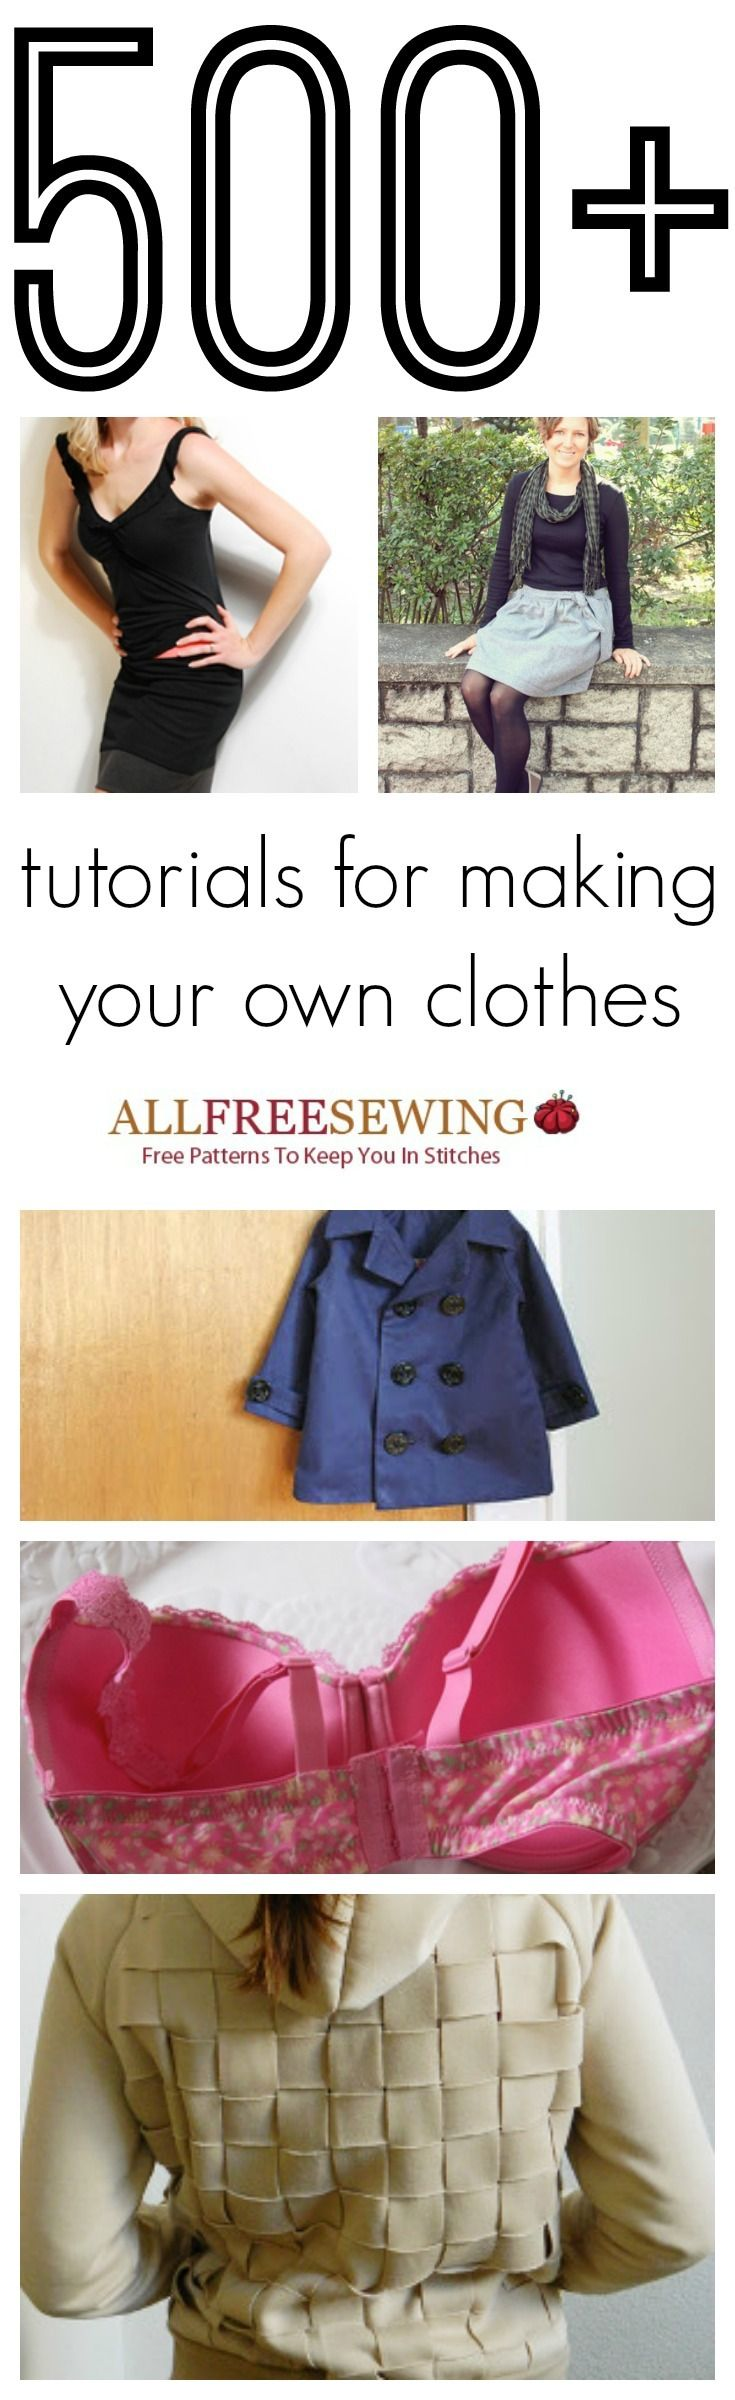 How To Design And Make Your Own Clothes   How To Make Clothes 500 Tutorials For Making Your Own Clothes